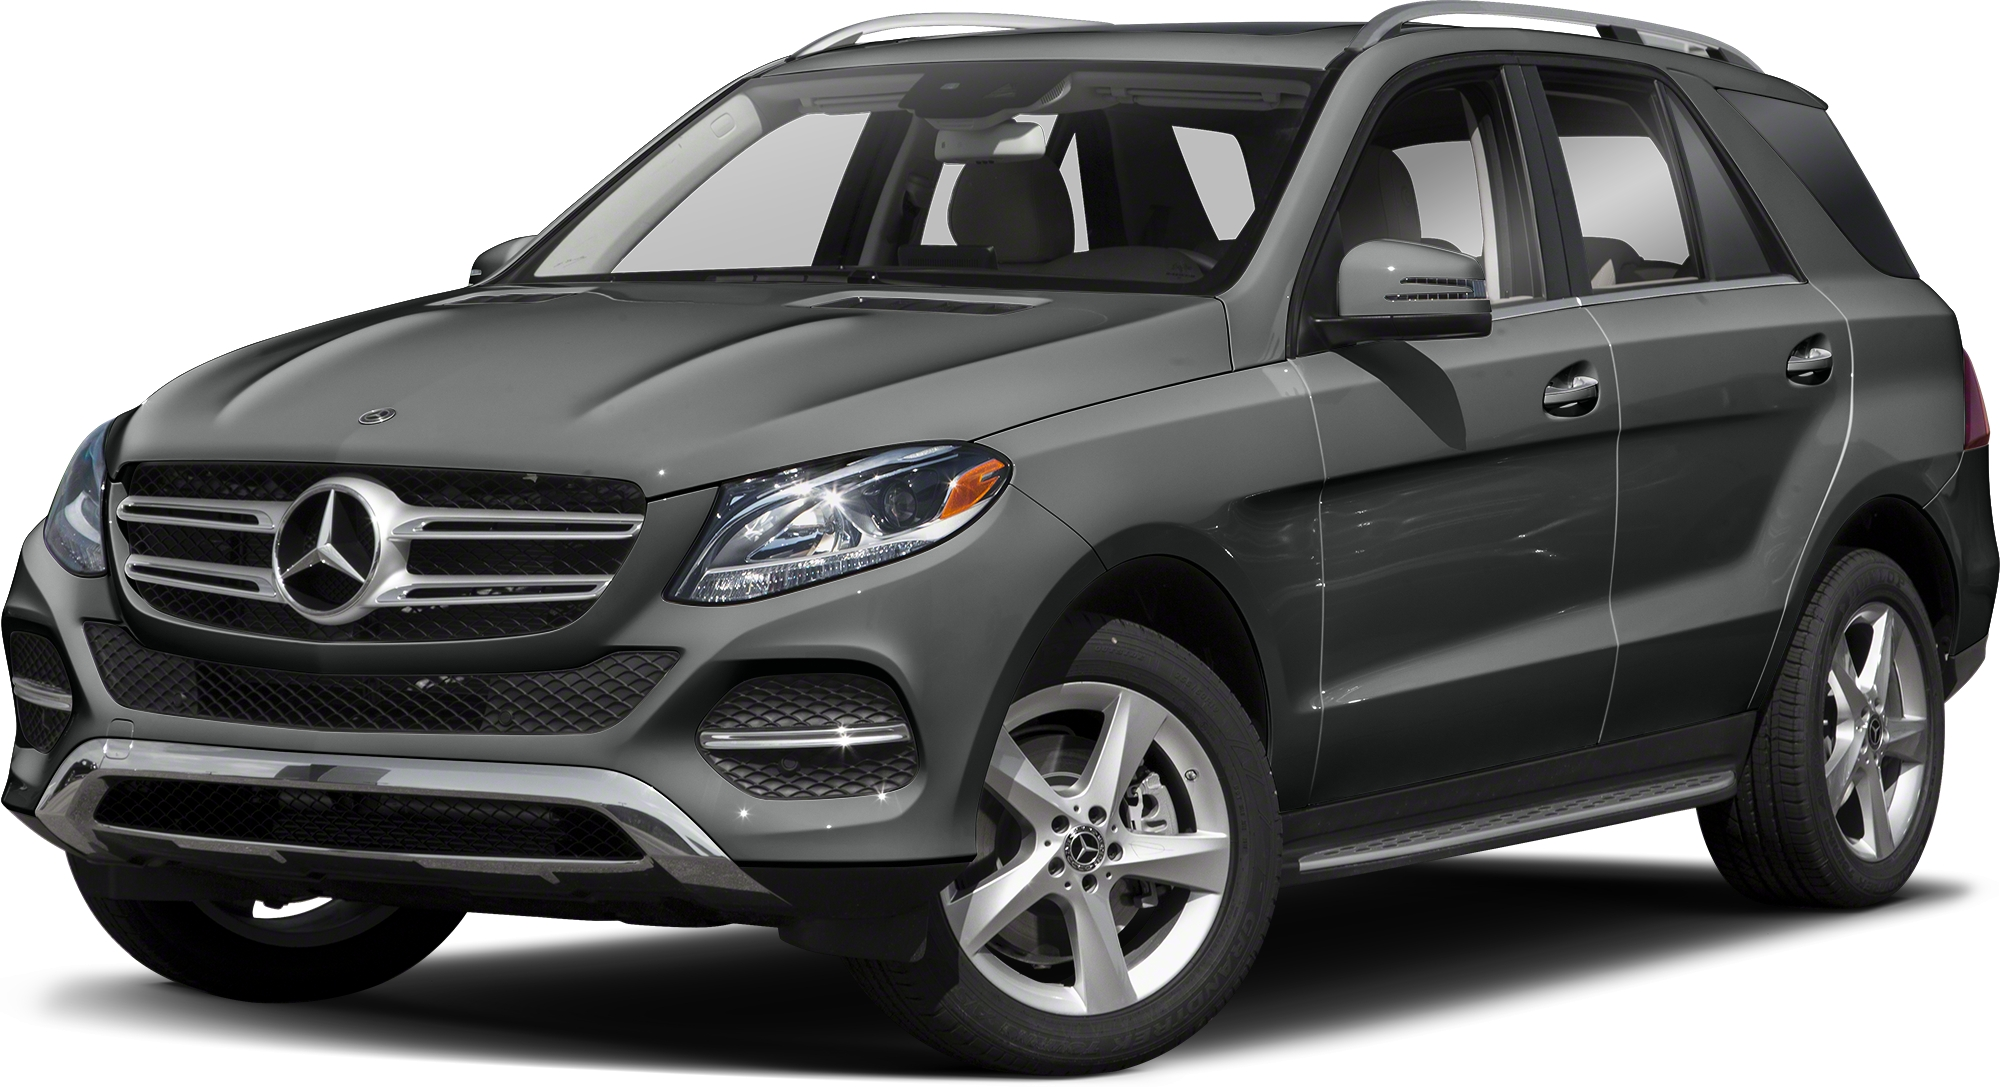 2019 mercedes benz gle 400 4matic suv 26097312 for sale price purchase lease near me. Black Bedroom Furniture Sets. Home Design Ideas